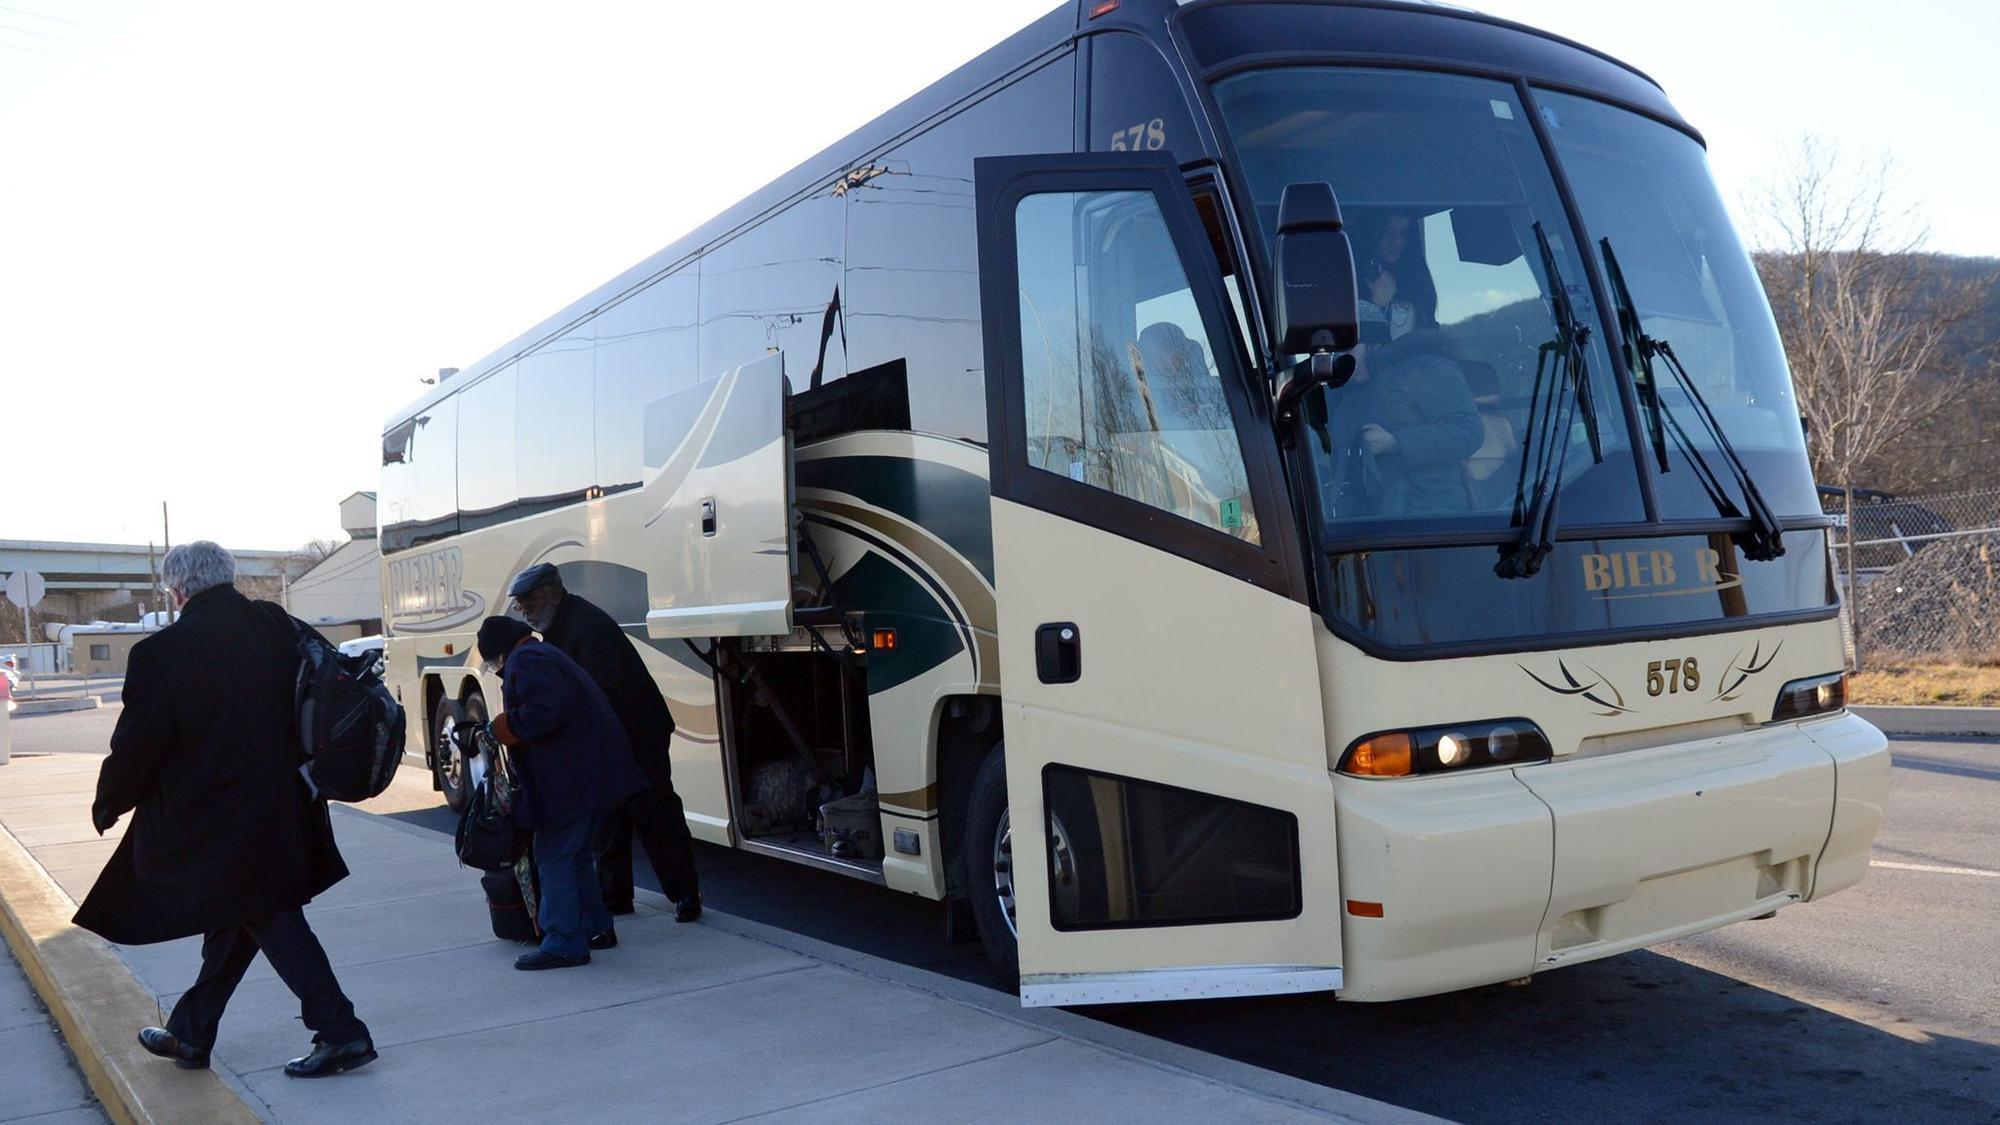 bieber bus riders left with unanswered questions about future